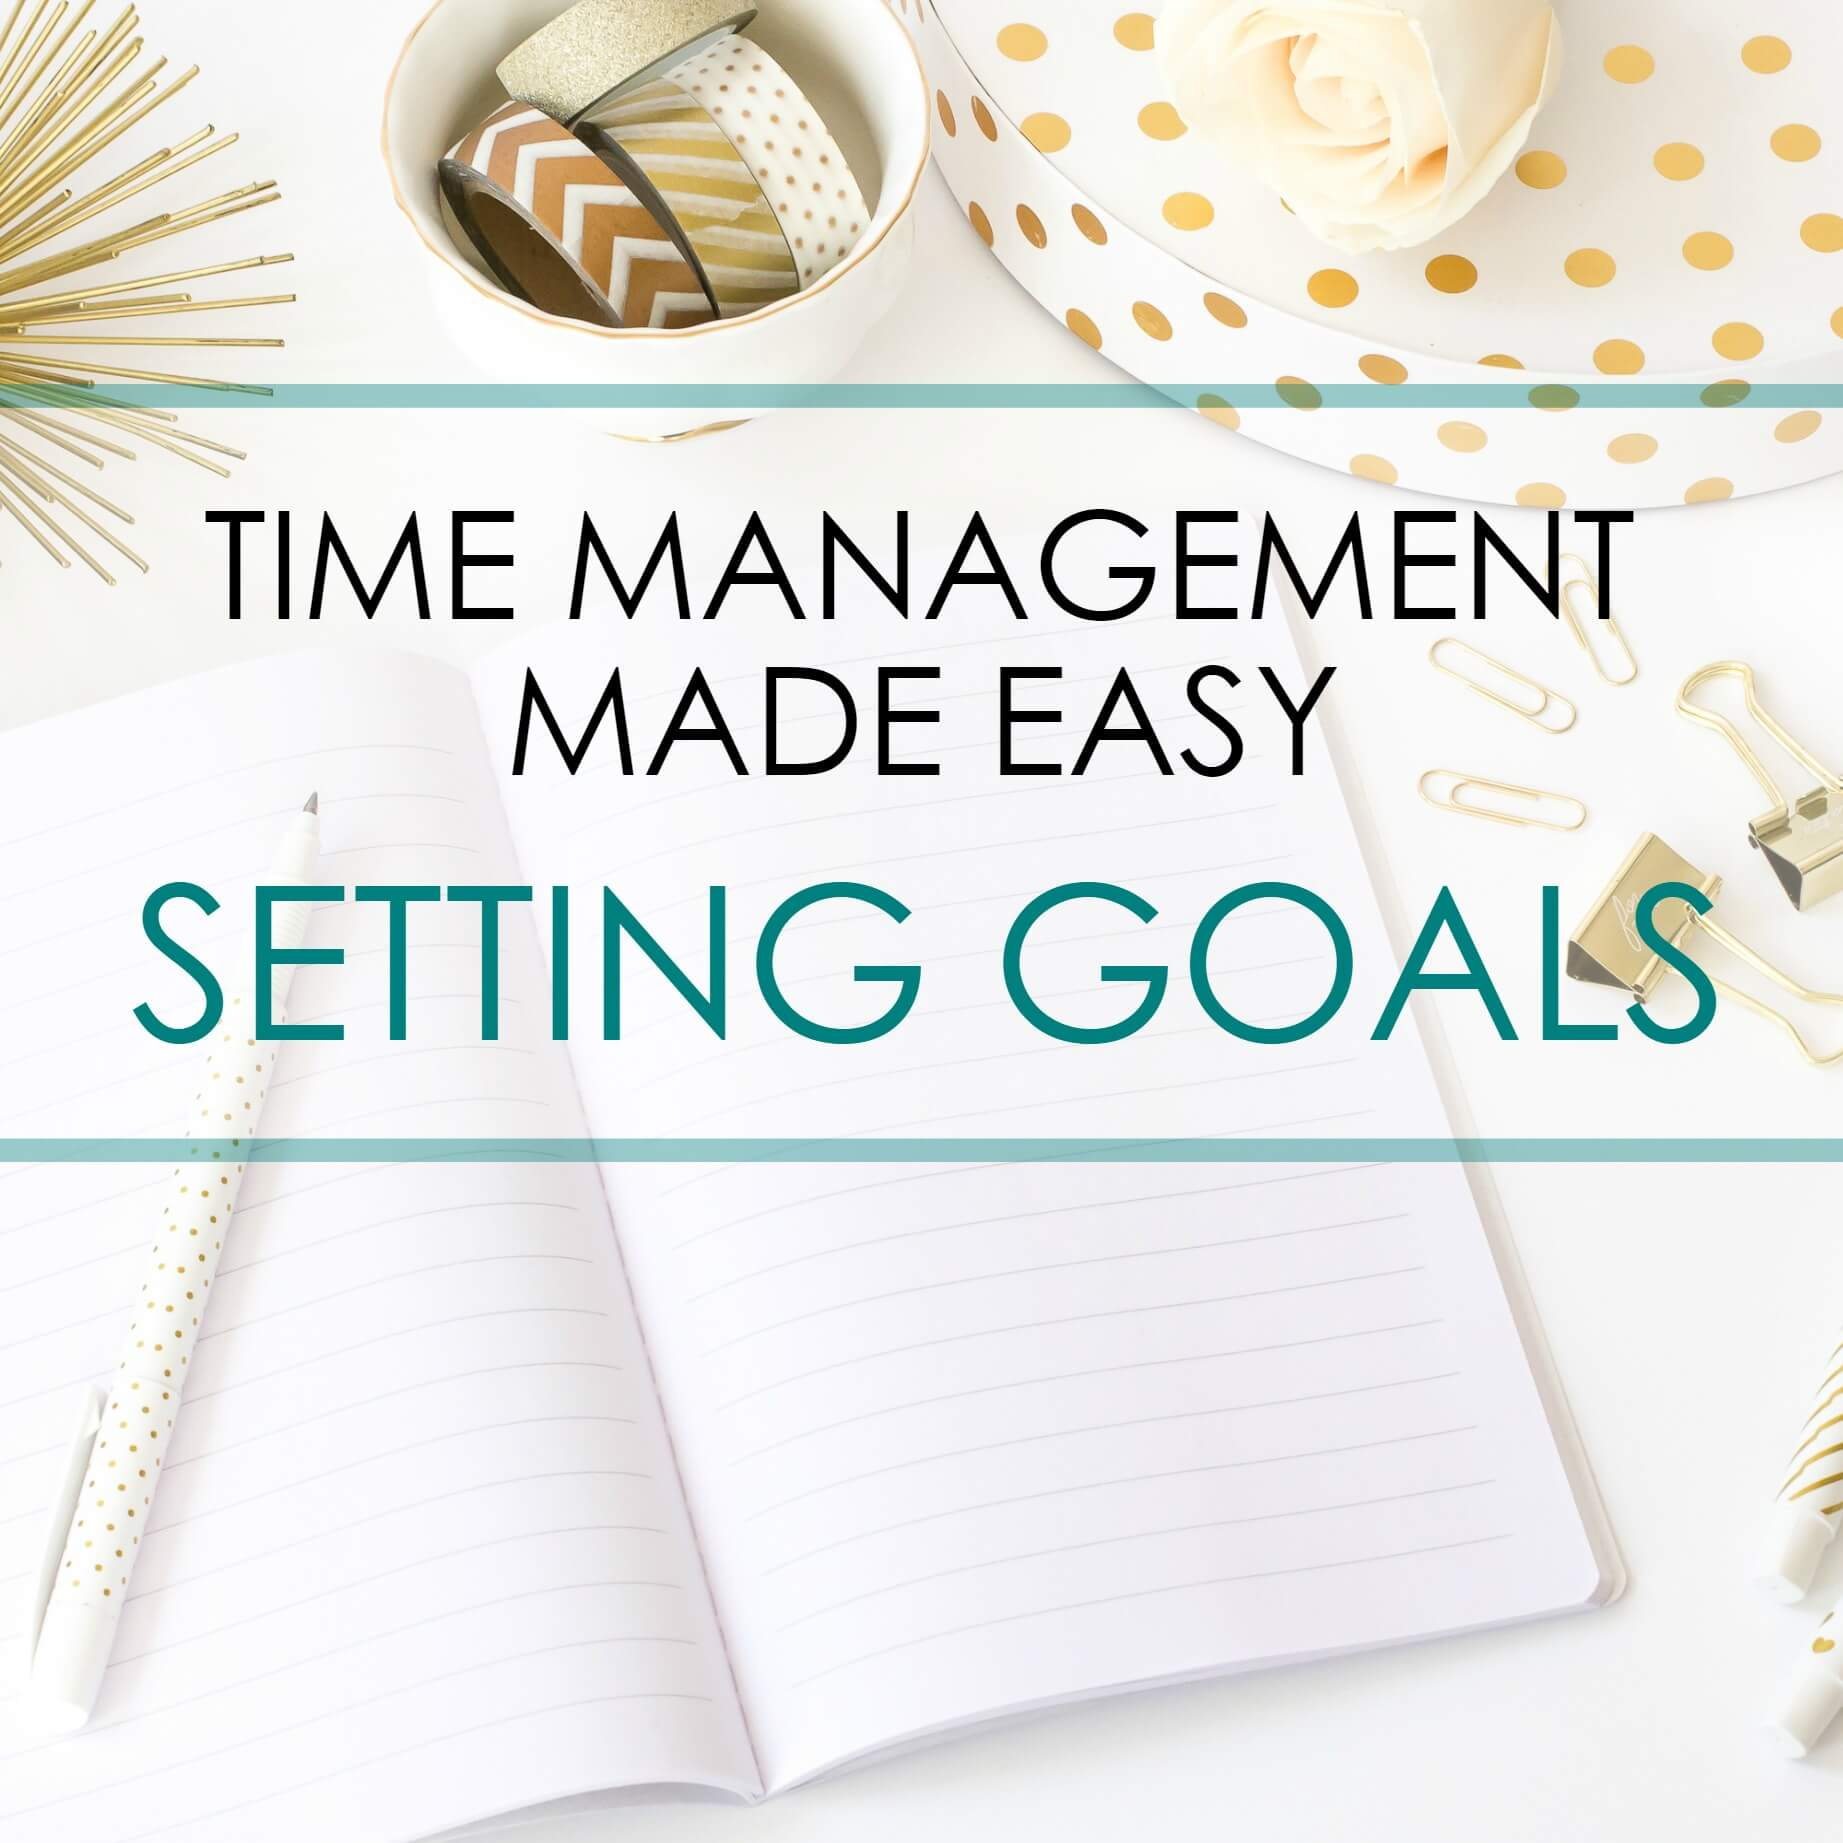 Time Managment Made Easy - Setting Goals